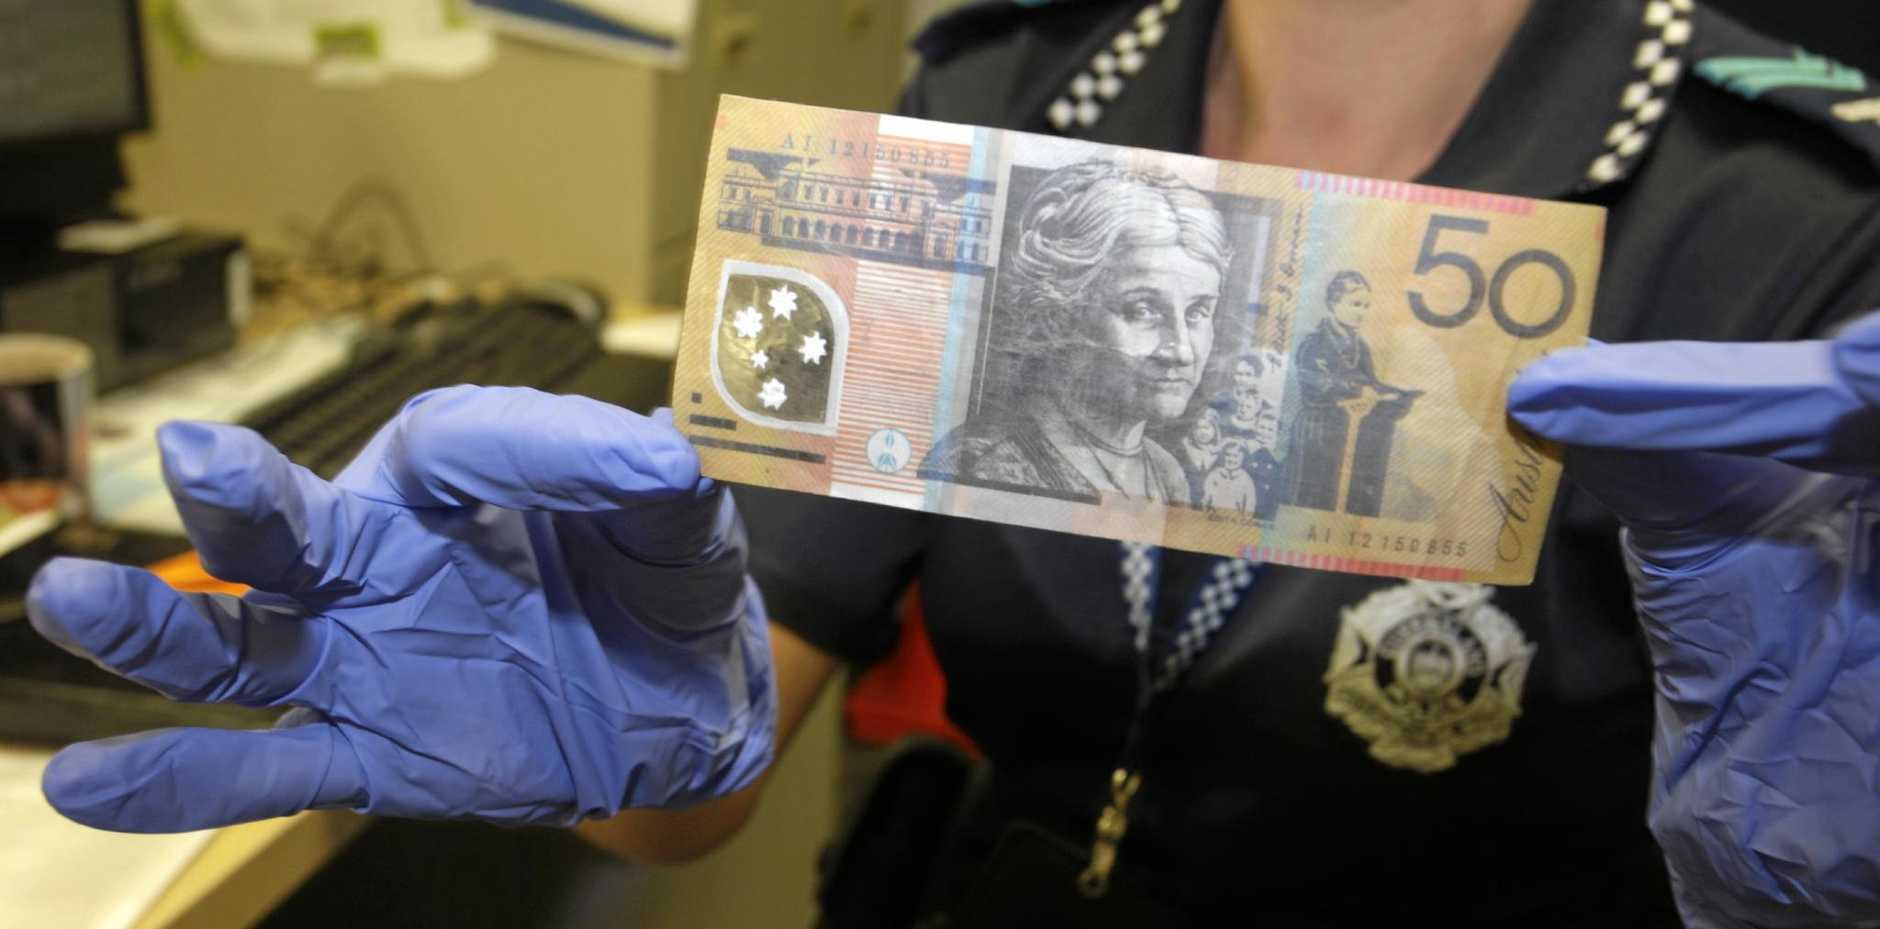 Counterfeit notes have been circulating in the Goondiwindi region.